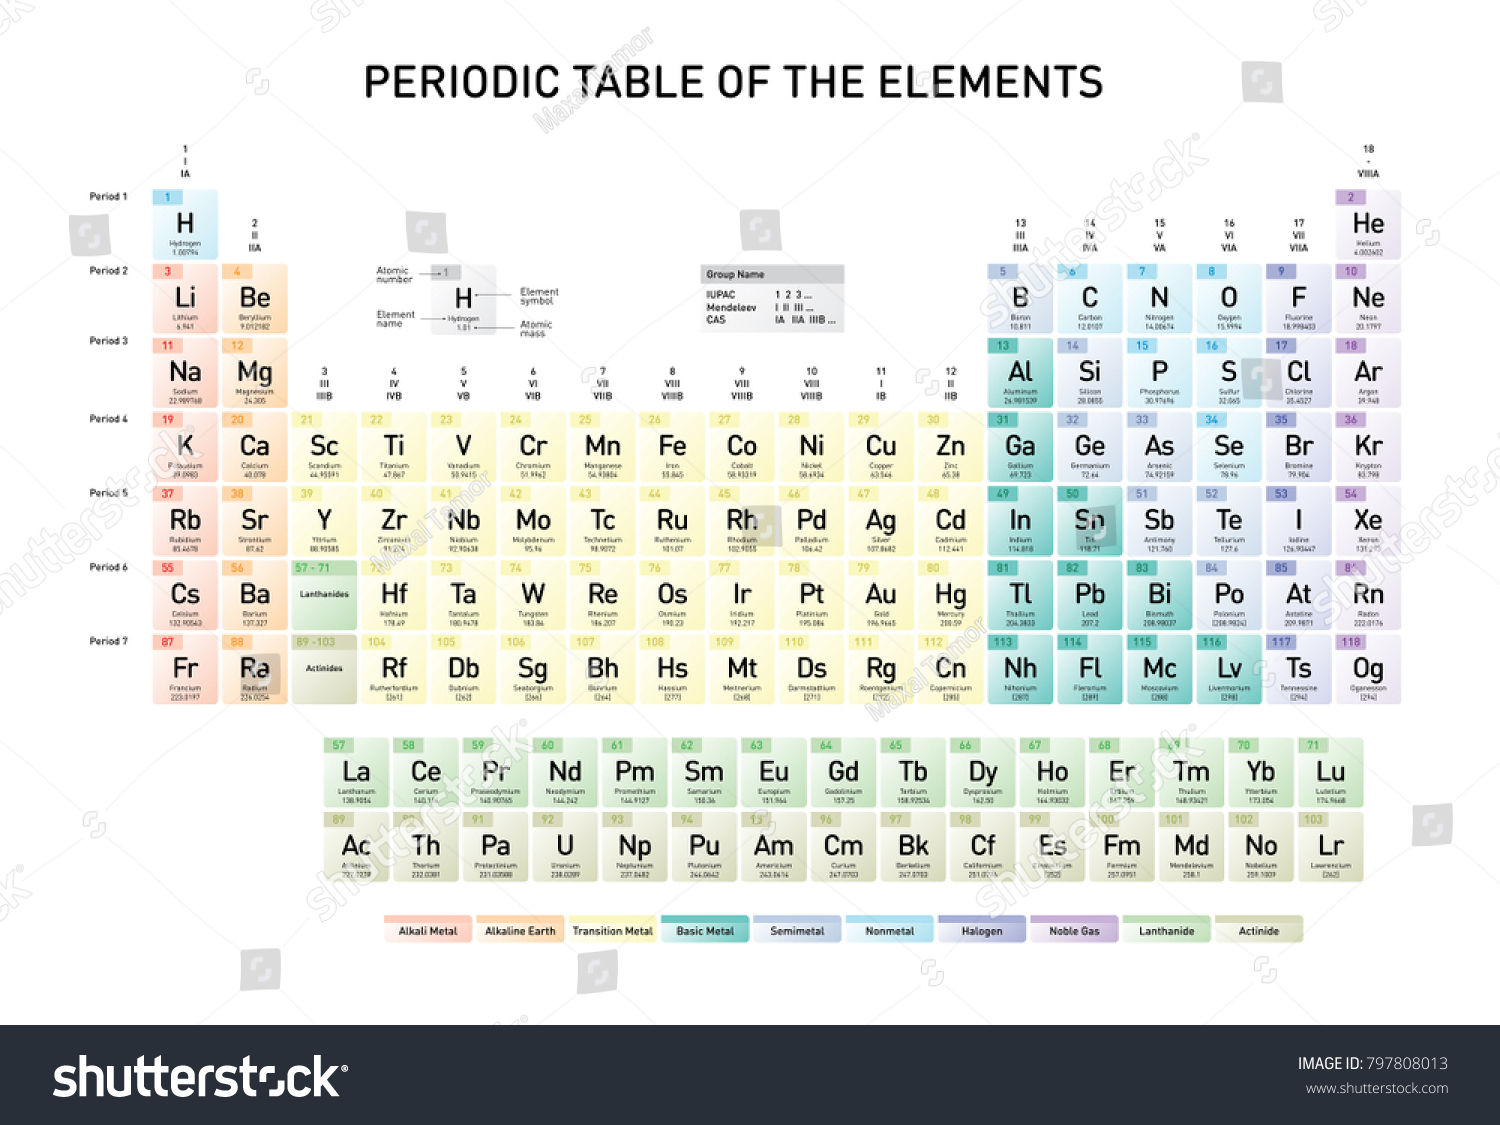 Simple periodic table elements atomic number stock vector 797808013 simple periodic table of the elements with atomic number element name element symbol and urtaz Choice Image